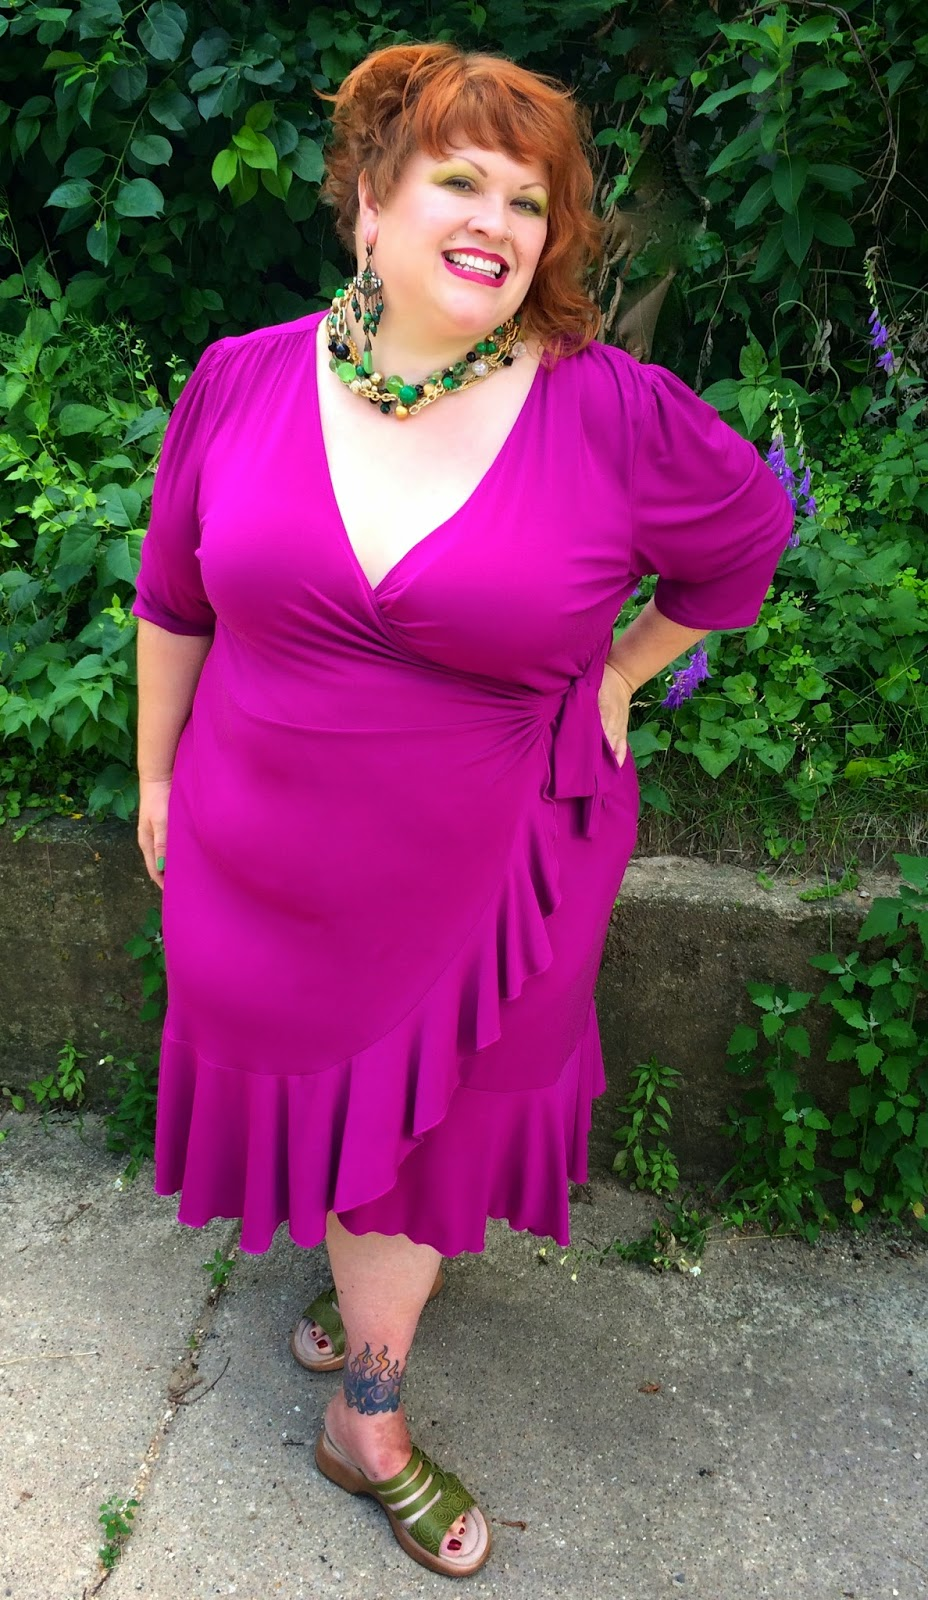 c7f81b21293 Dress  Whimsy Wrap Dress in Magenta by Kiyonna via Gwynnie Bee (click link  to get a free month   help me earn a free garment for a month)